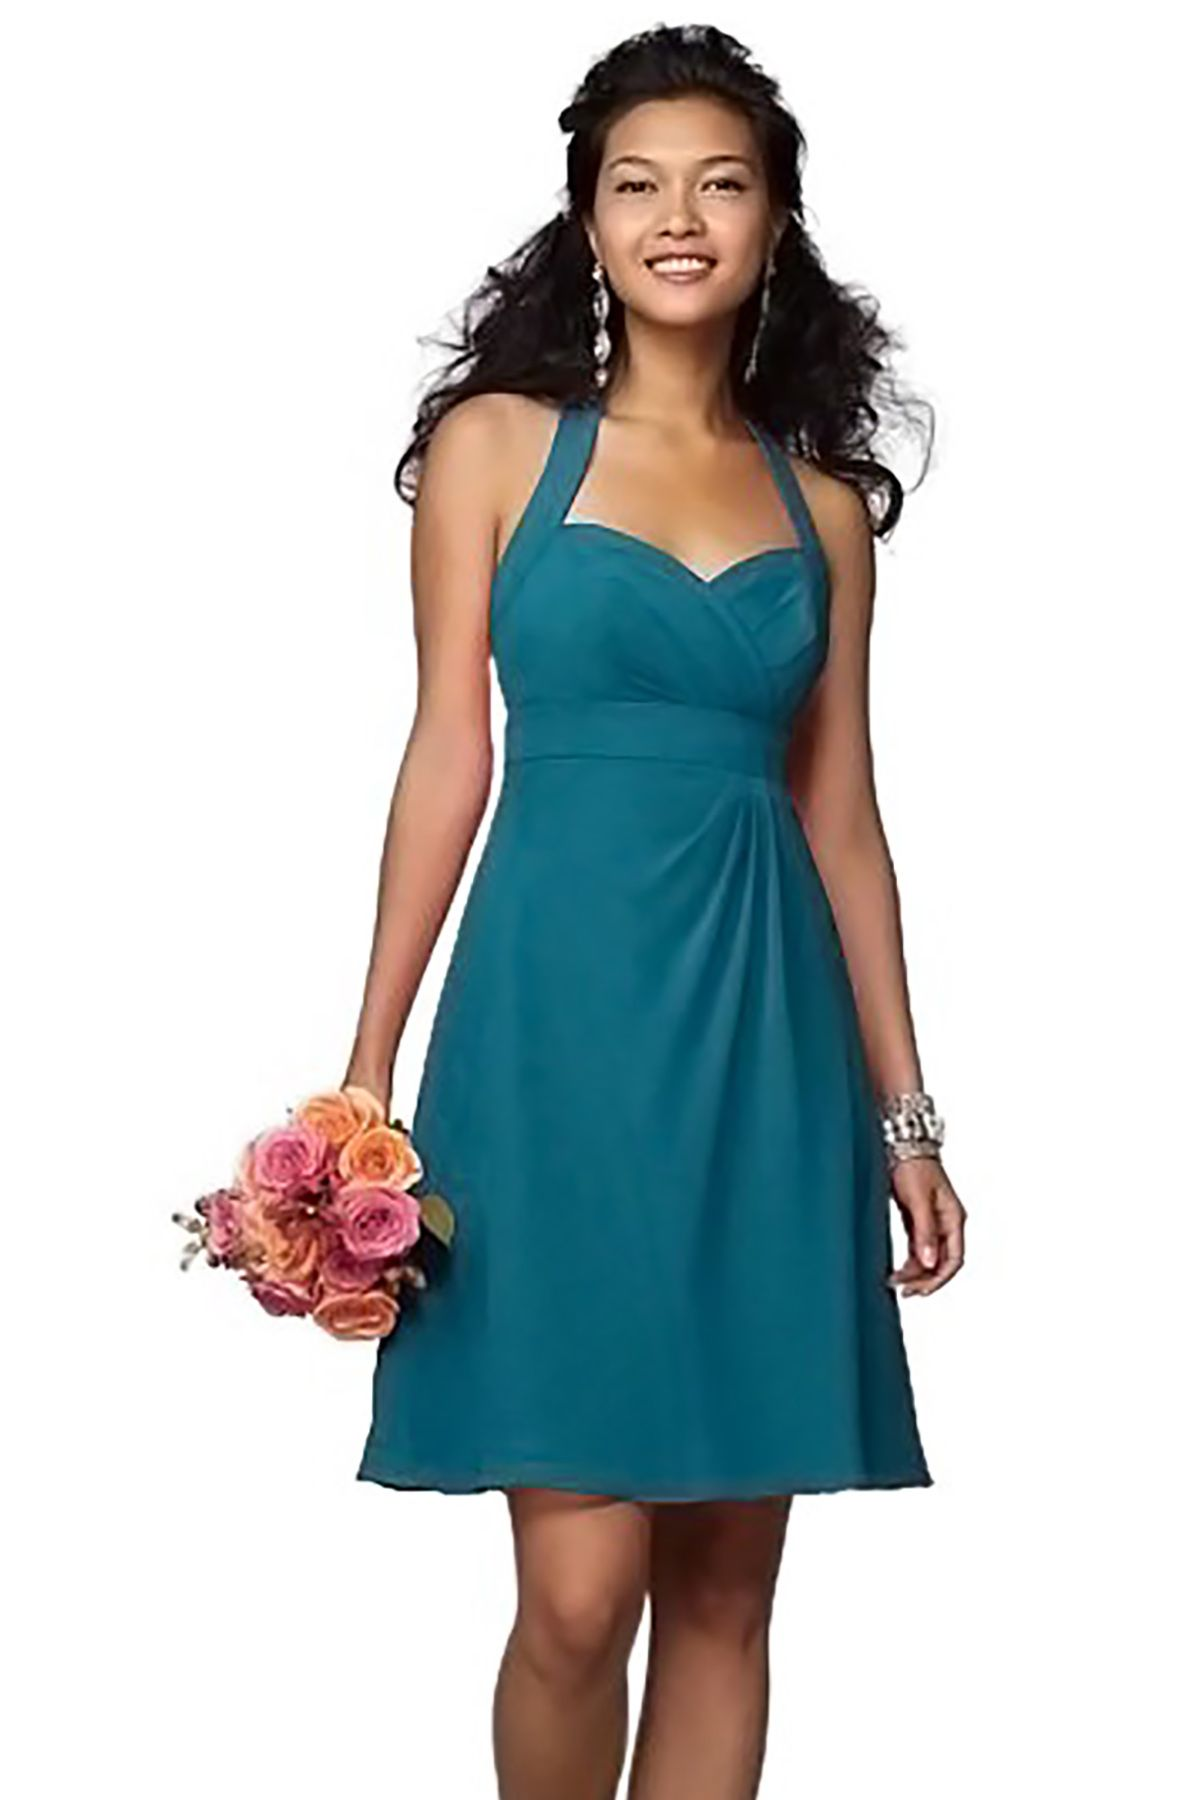 Alfred Angelo 7172 Bridesmaid Dress in Turquoise in Chiffon ...